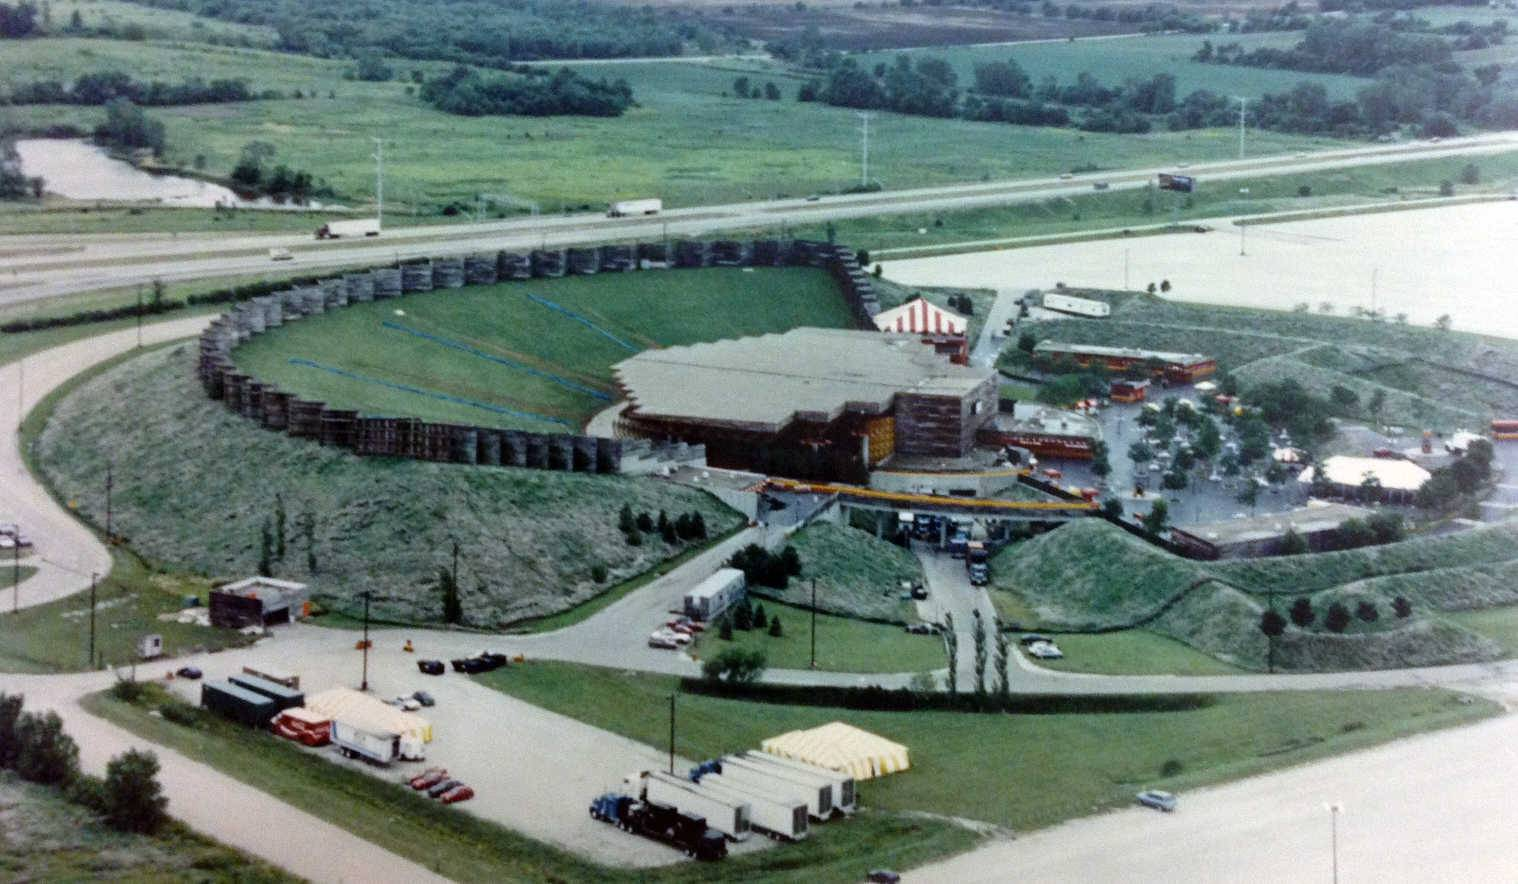 DAILY HERALD FILE PHOTOThe Poplar Creek Music Theatre in Hoffman Estates offered shows from 1980 until 1994. This Sept. 13, 1990, image shows the complex.